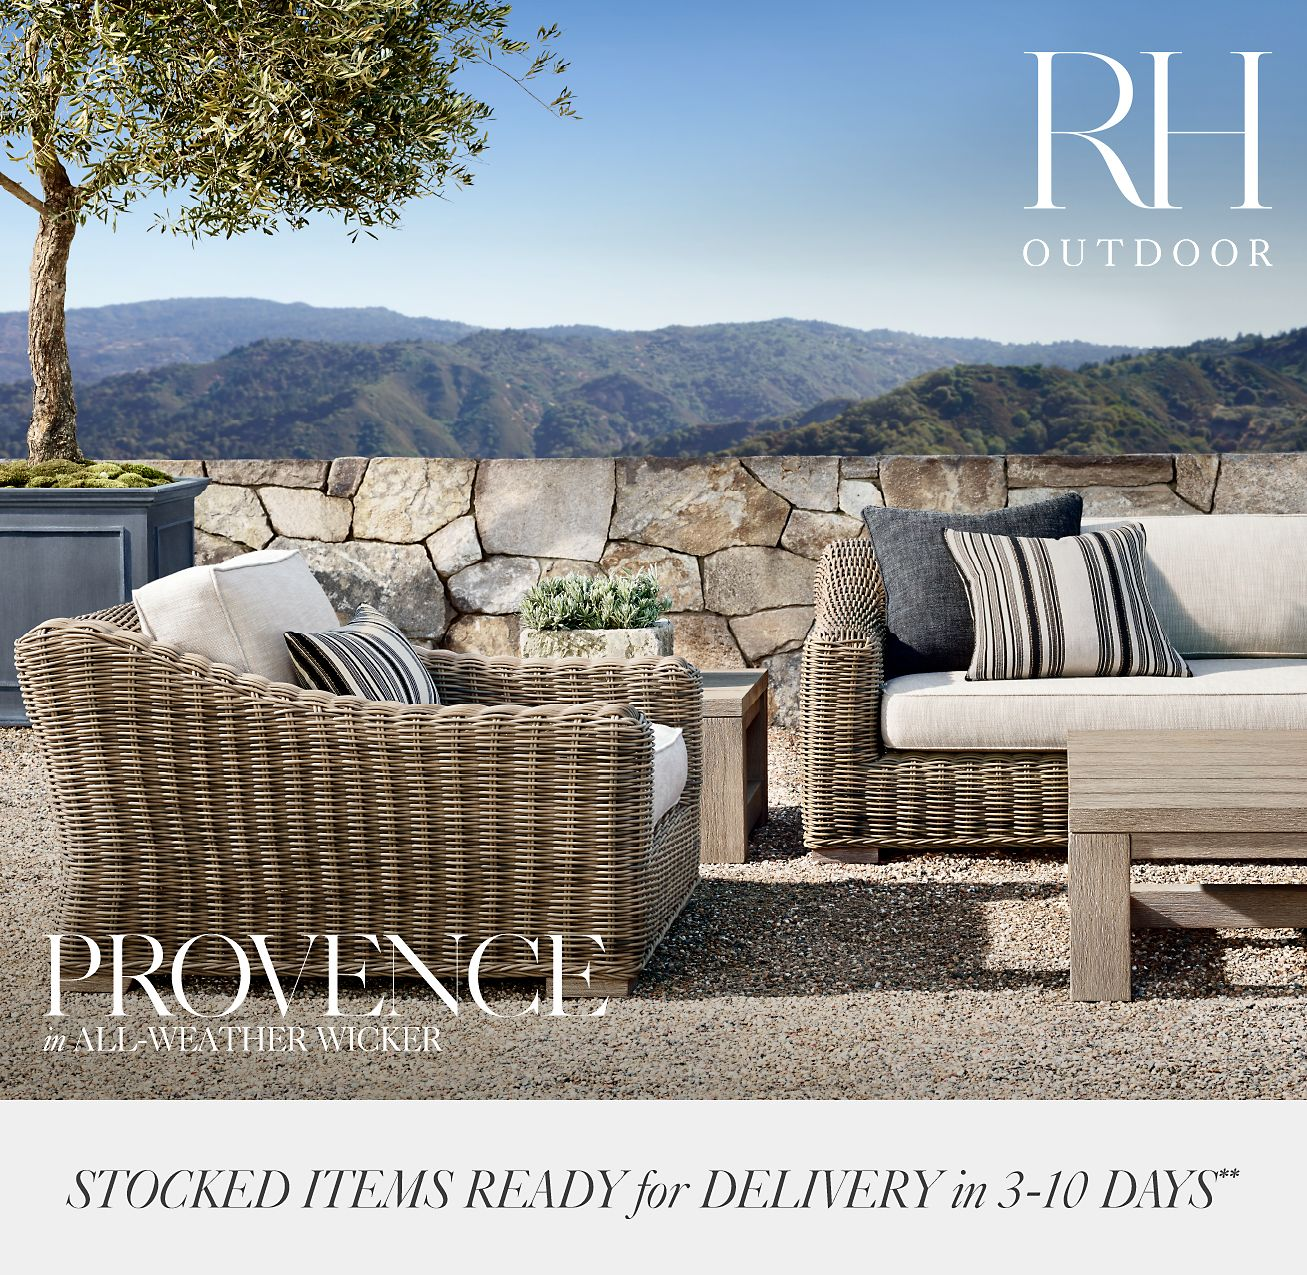 Fabulous Restoration Hardware Outdoor Collections In All Weather Download Free Architecture Designs Scobabritishbridgeorg